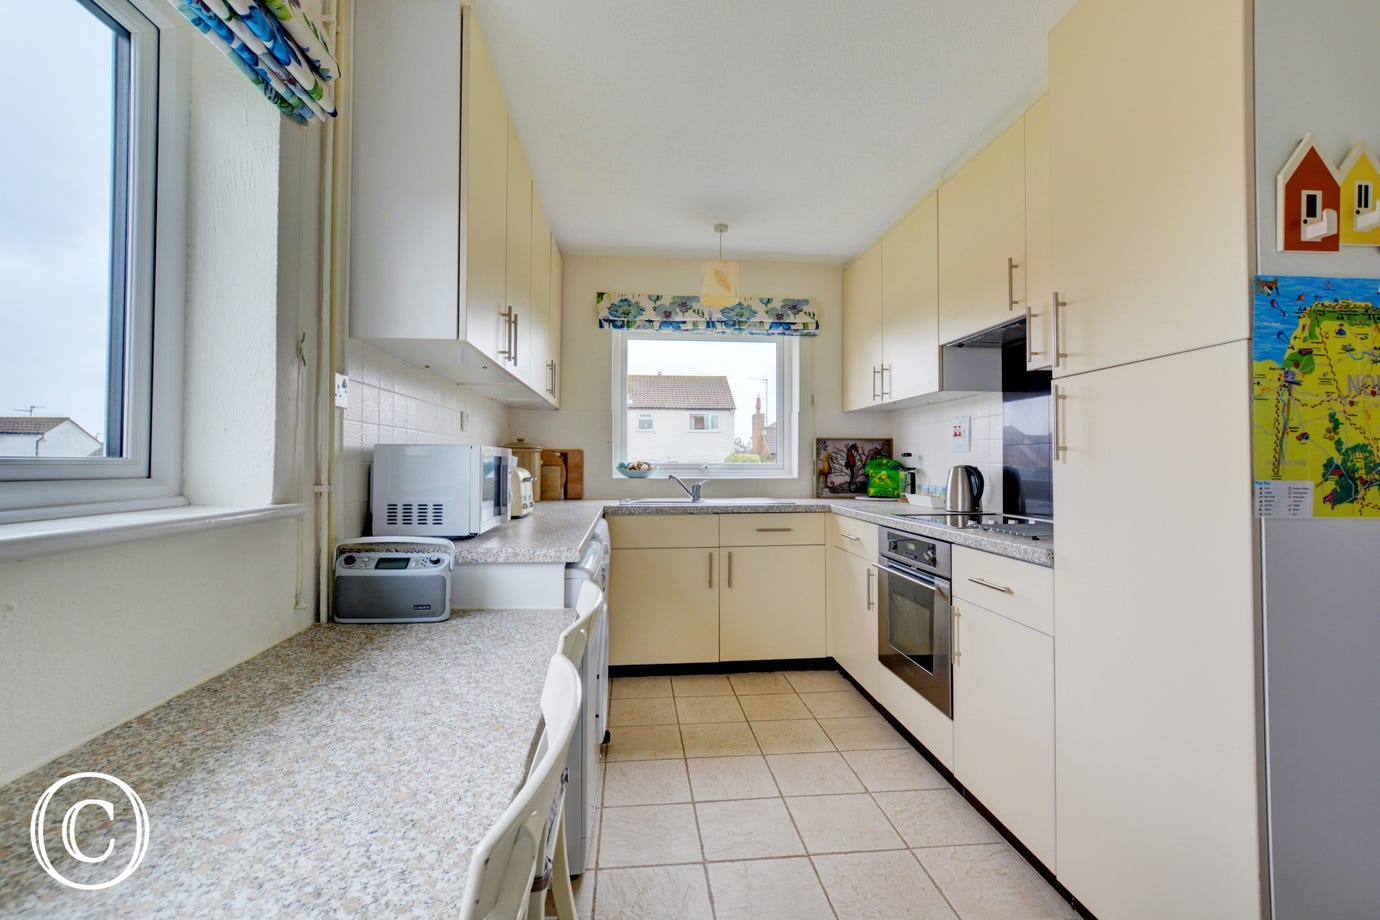 The kitchen is modern and well equipped with a dishwasher and washing machine.